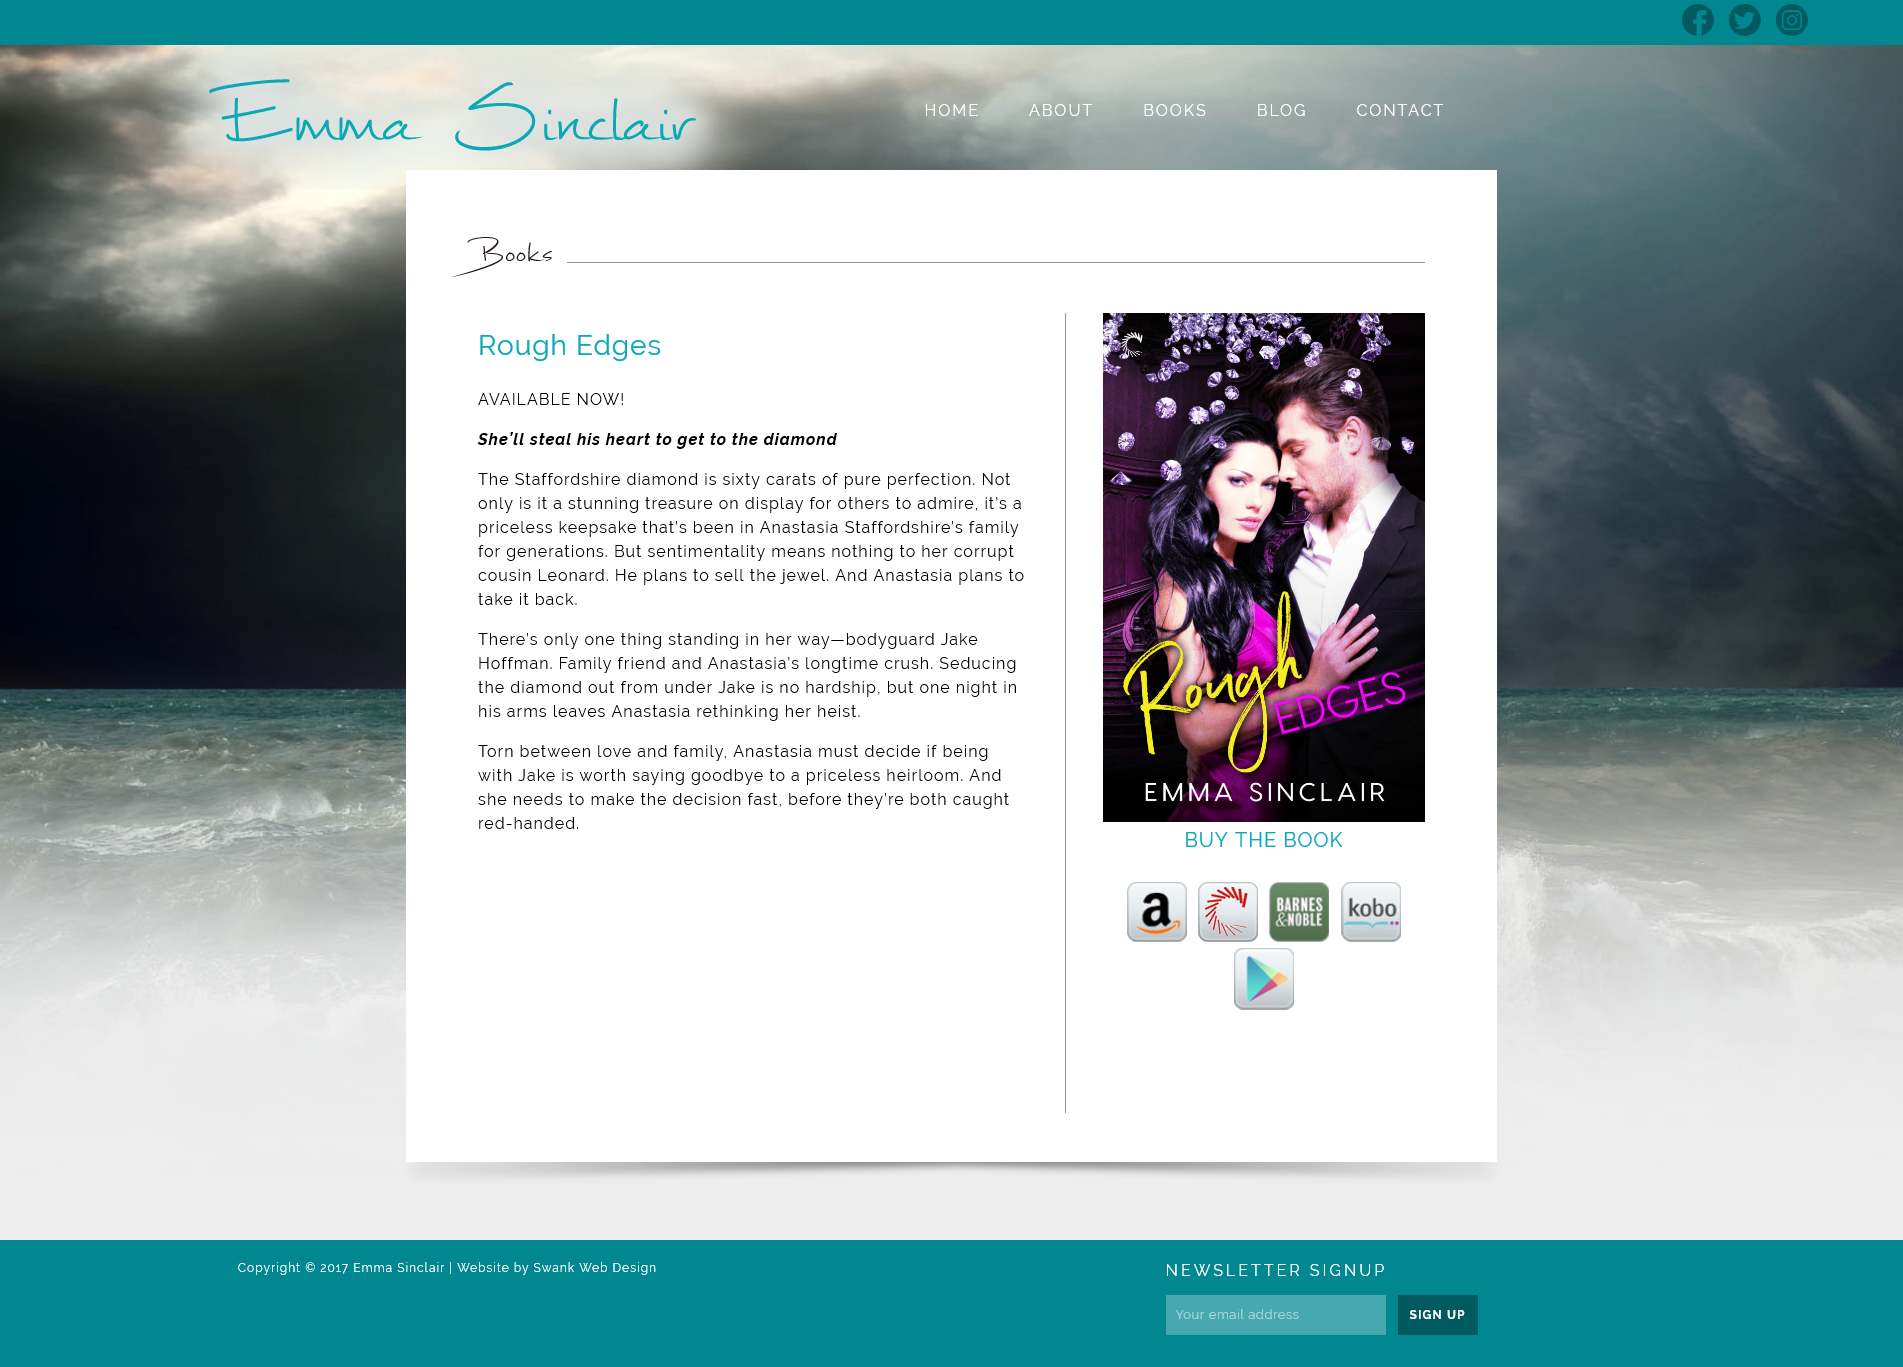 Website Design for Author Emma Sinclair by Swank Web Design